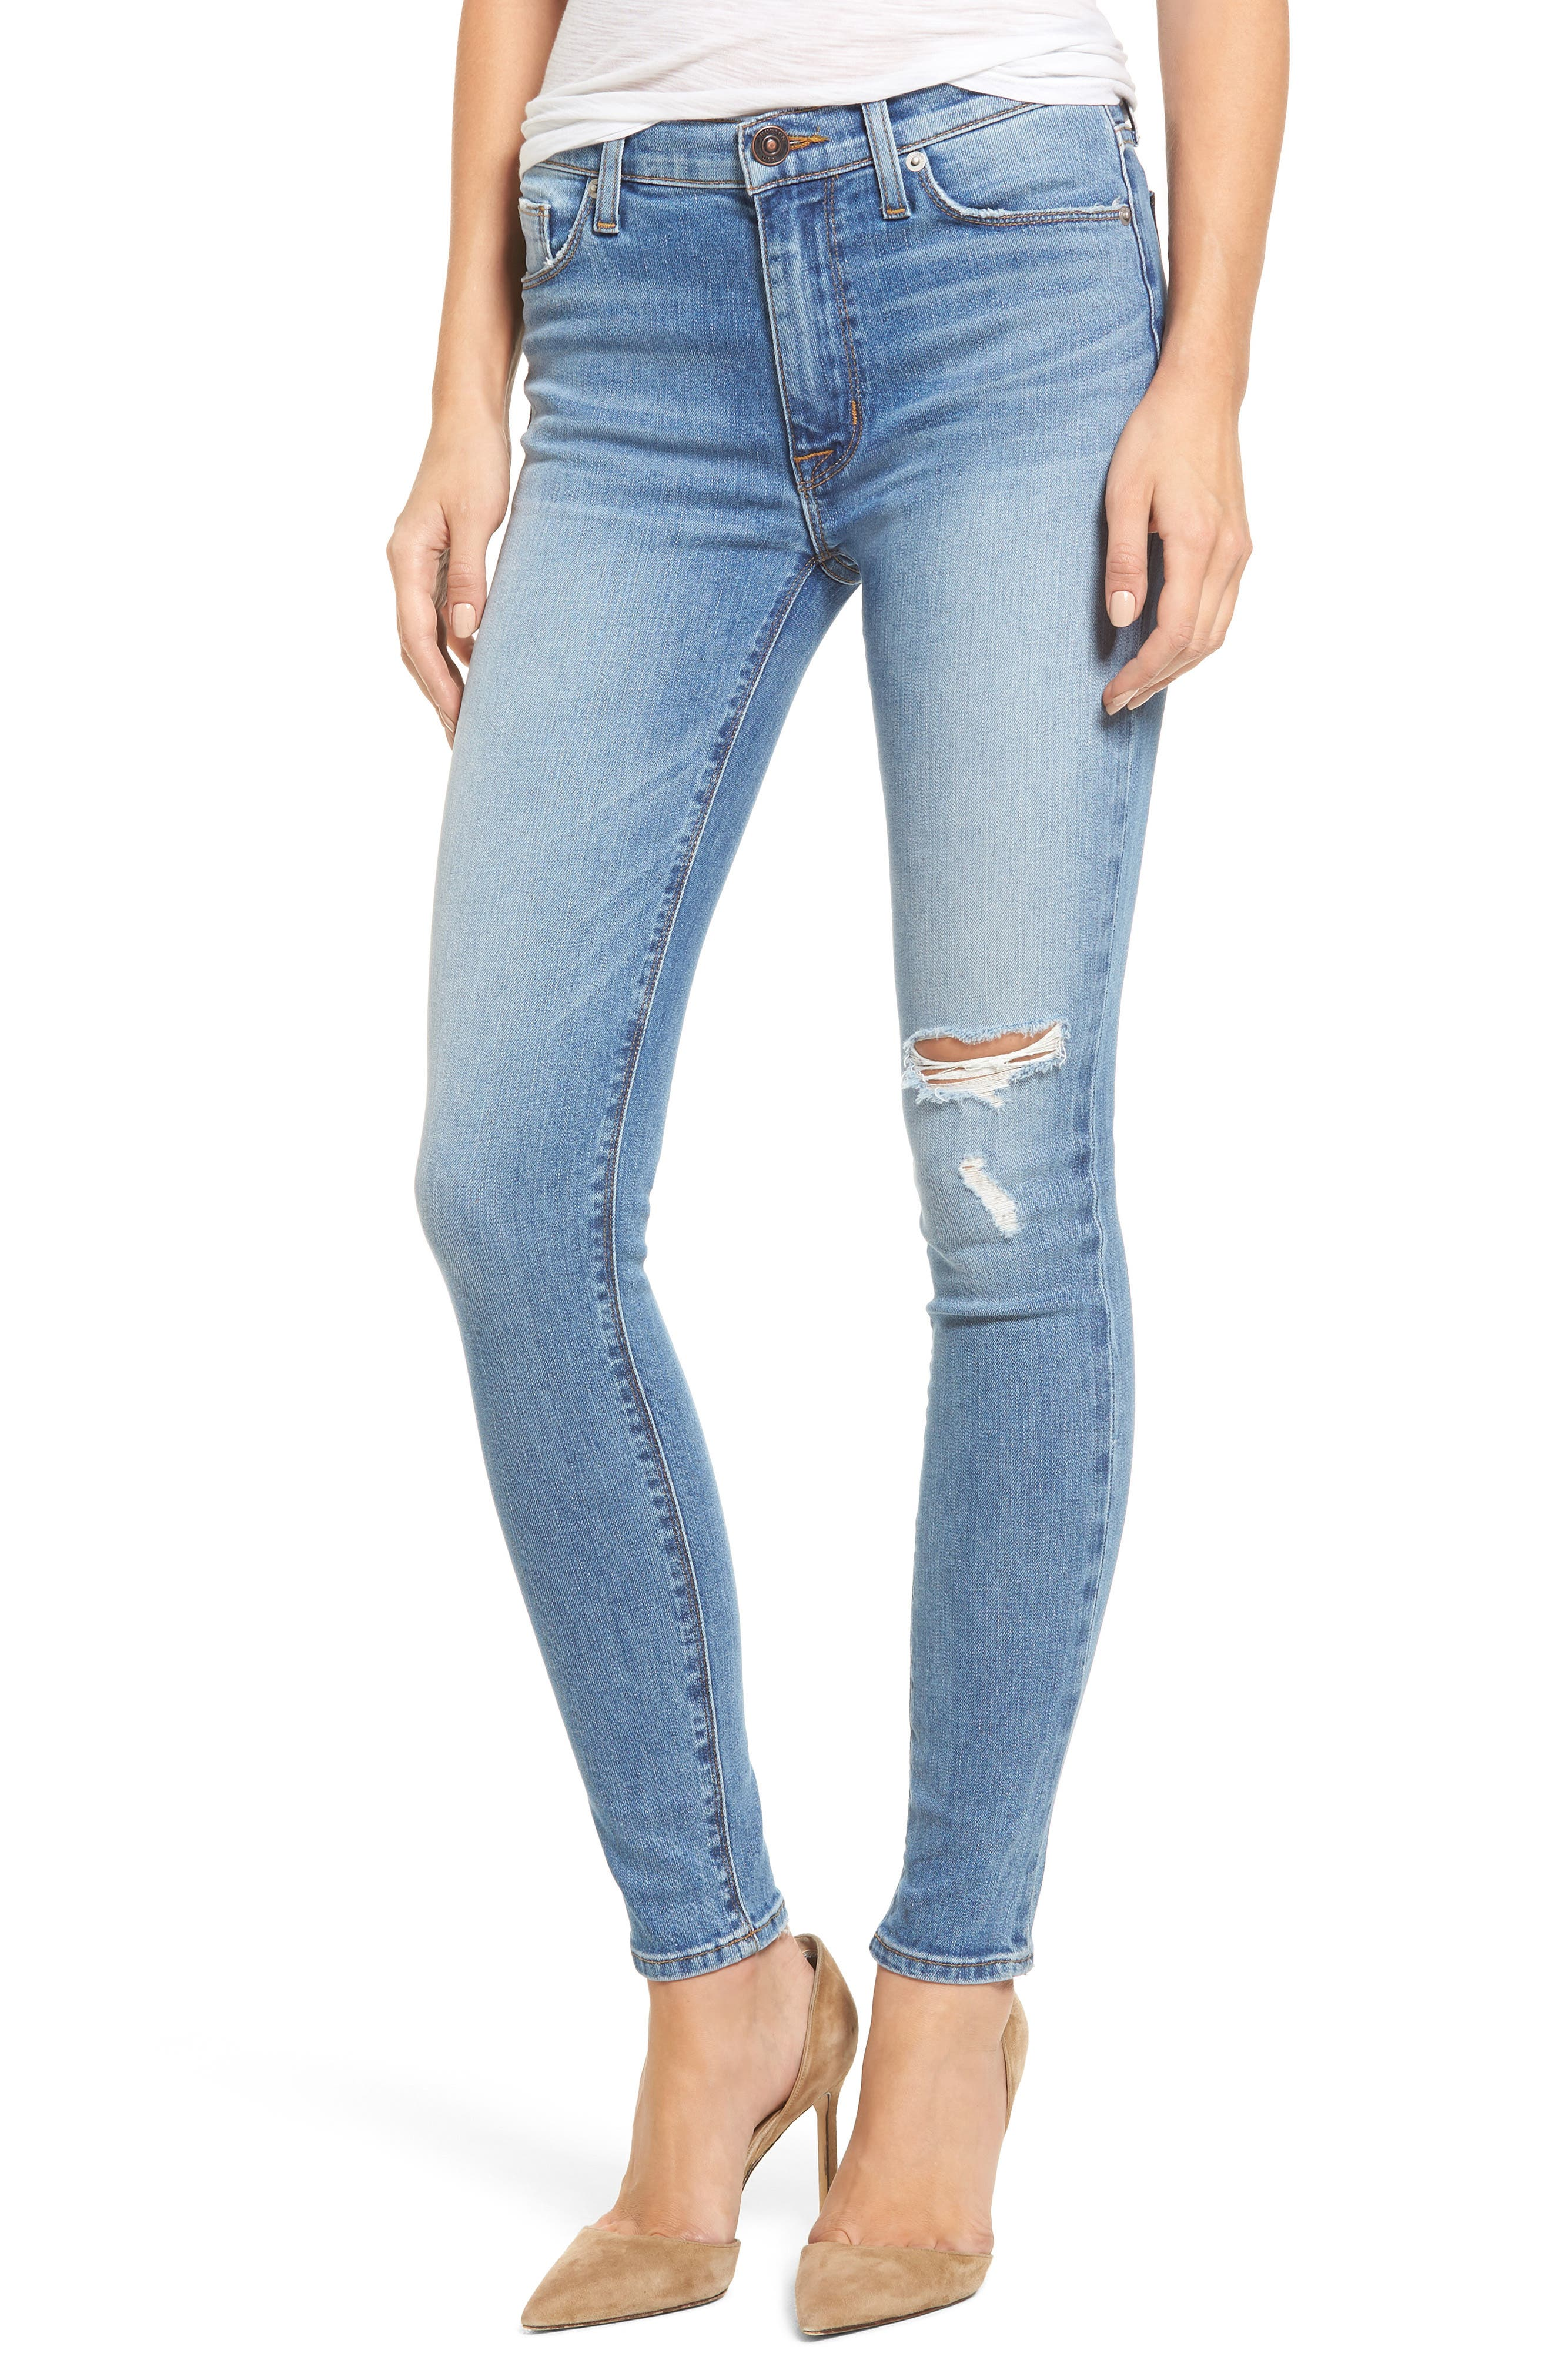 Barbara High Waist Super Skinny Jeans,                         Main,                         color, Movement